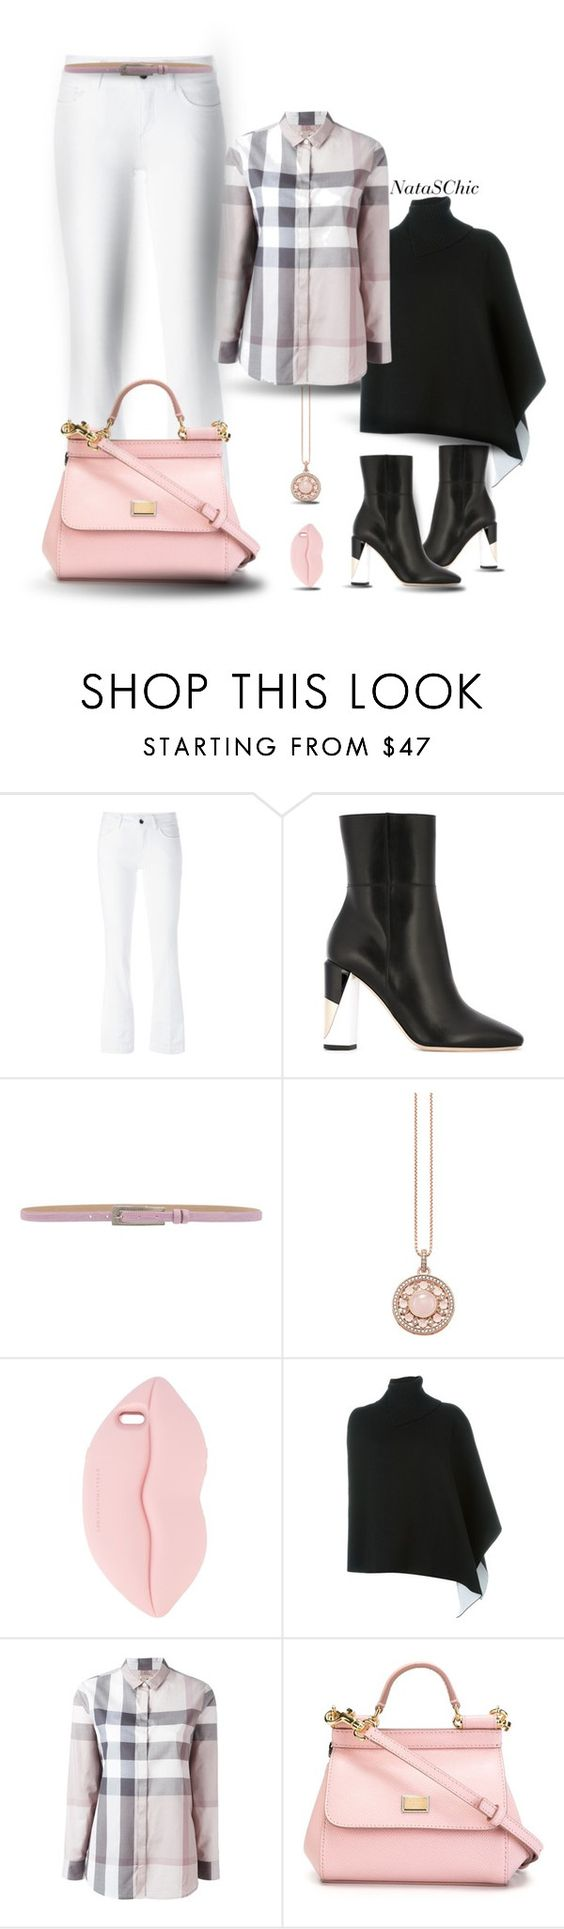 """Casual comfort"" by nataschic ❤ liked on Polyvore featuring Dolce&Gabbana, Jimmy Choo, MaxMara, Thomas Sabo, STELLA McCARTNEY, Marni and Burberry"